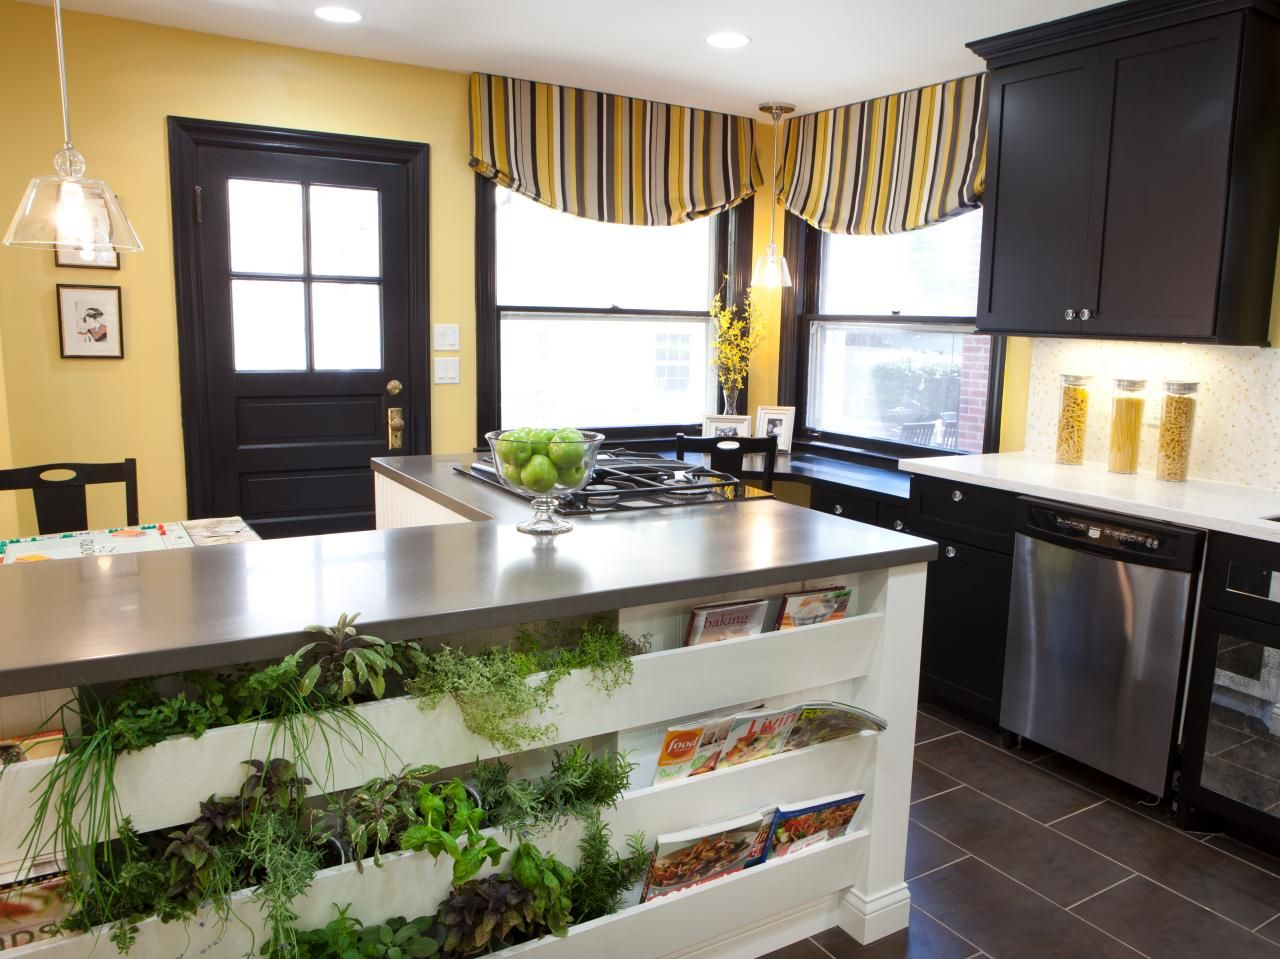 Kitchen Window Pictures: The Best Options, Styles & Ideas | Pinterest